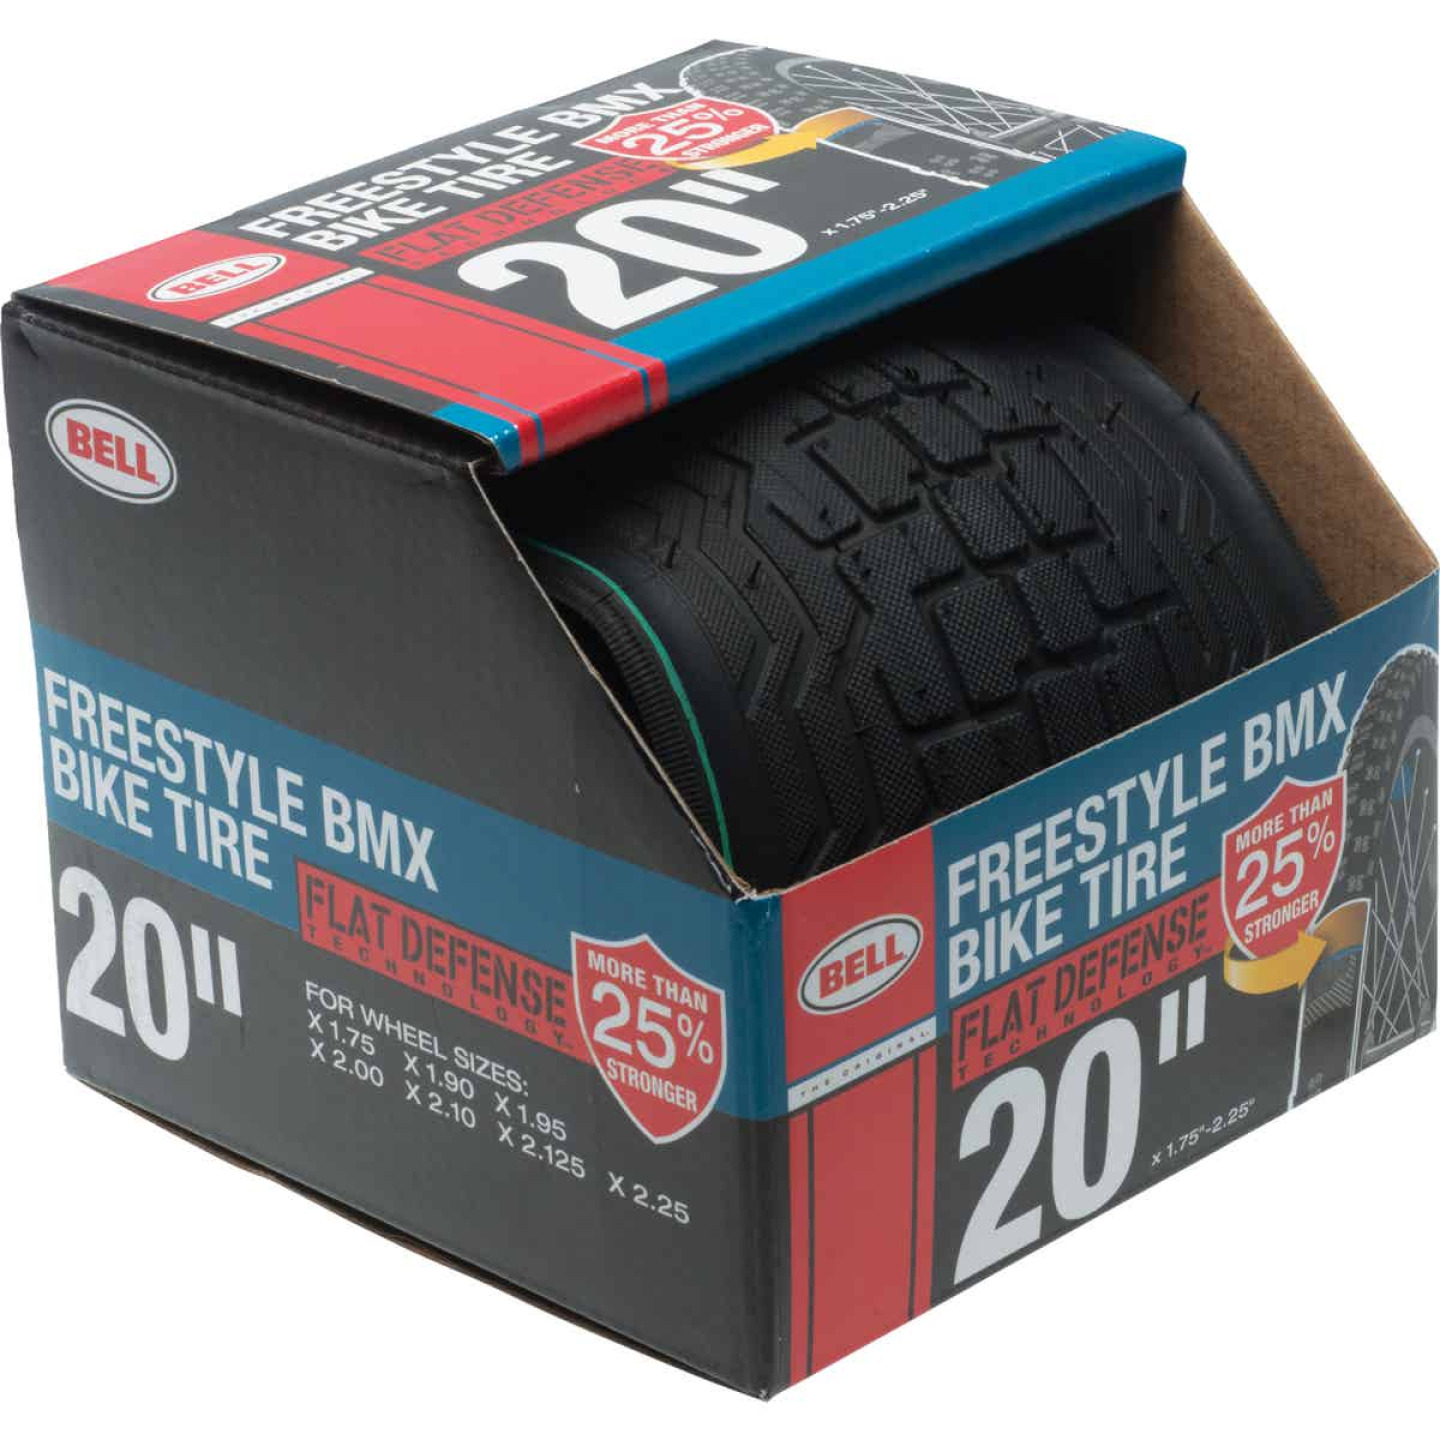 Bell 20 In. Freestyle Bicycle Tire Image 1